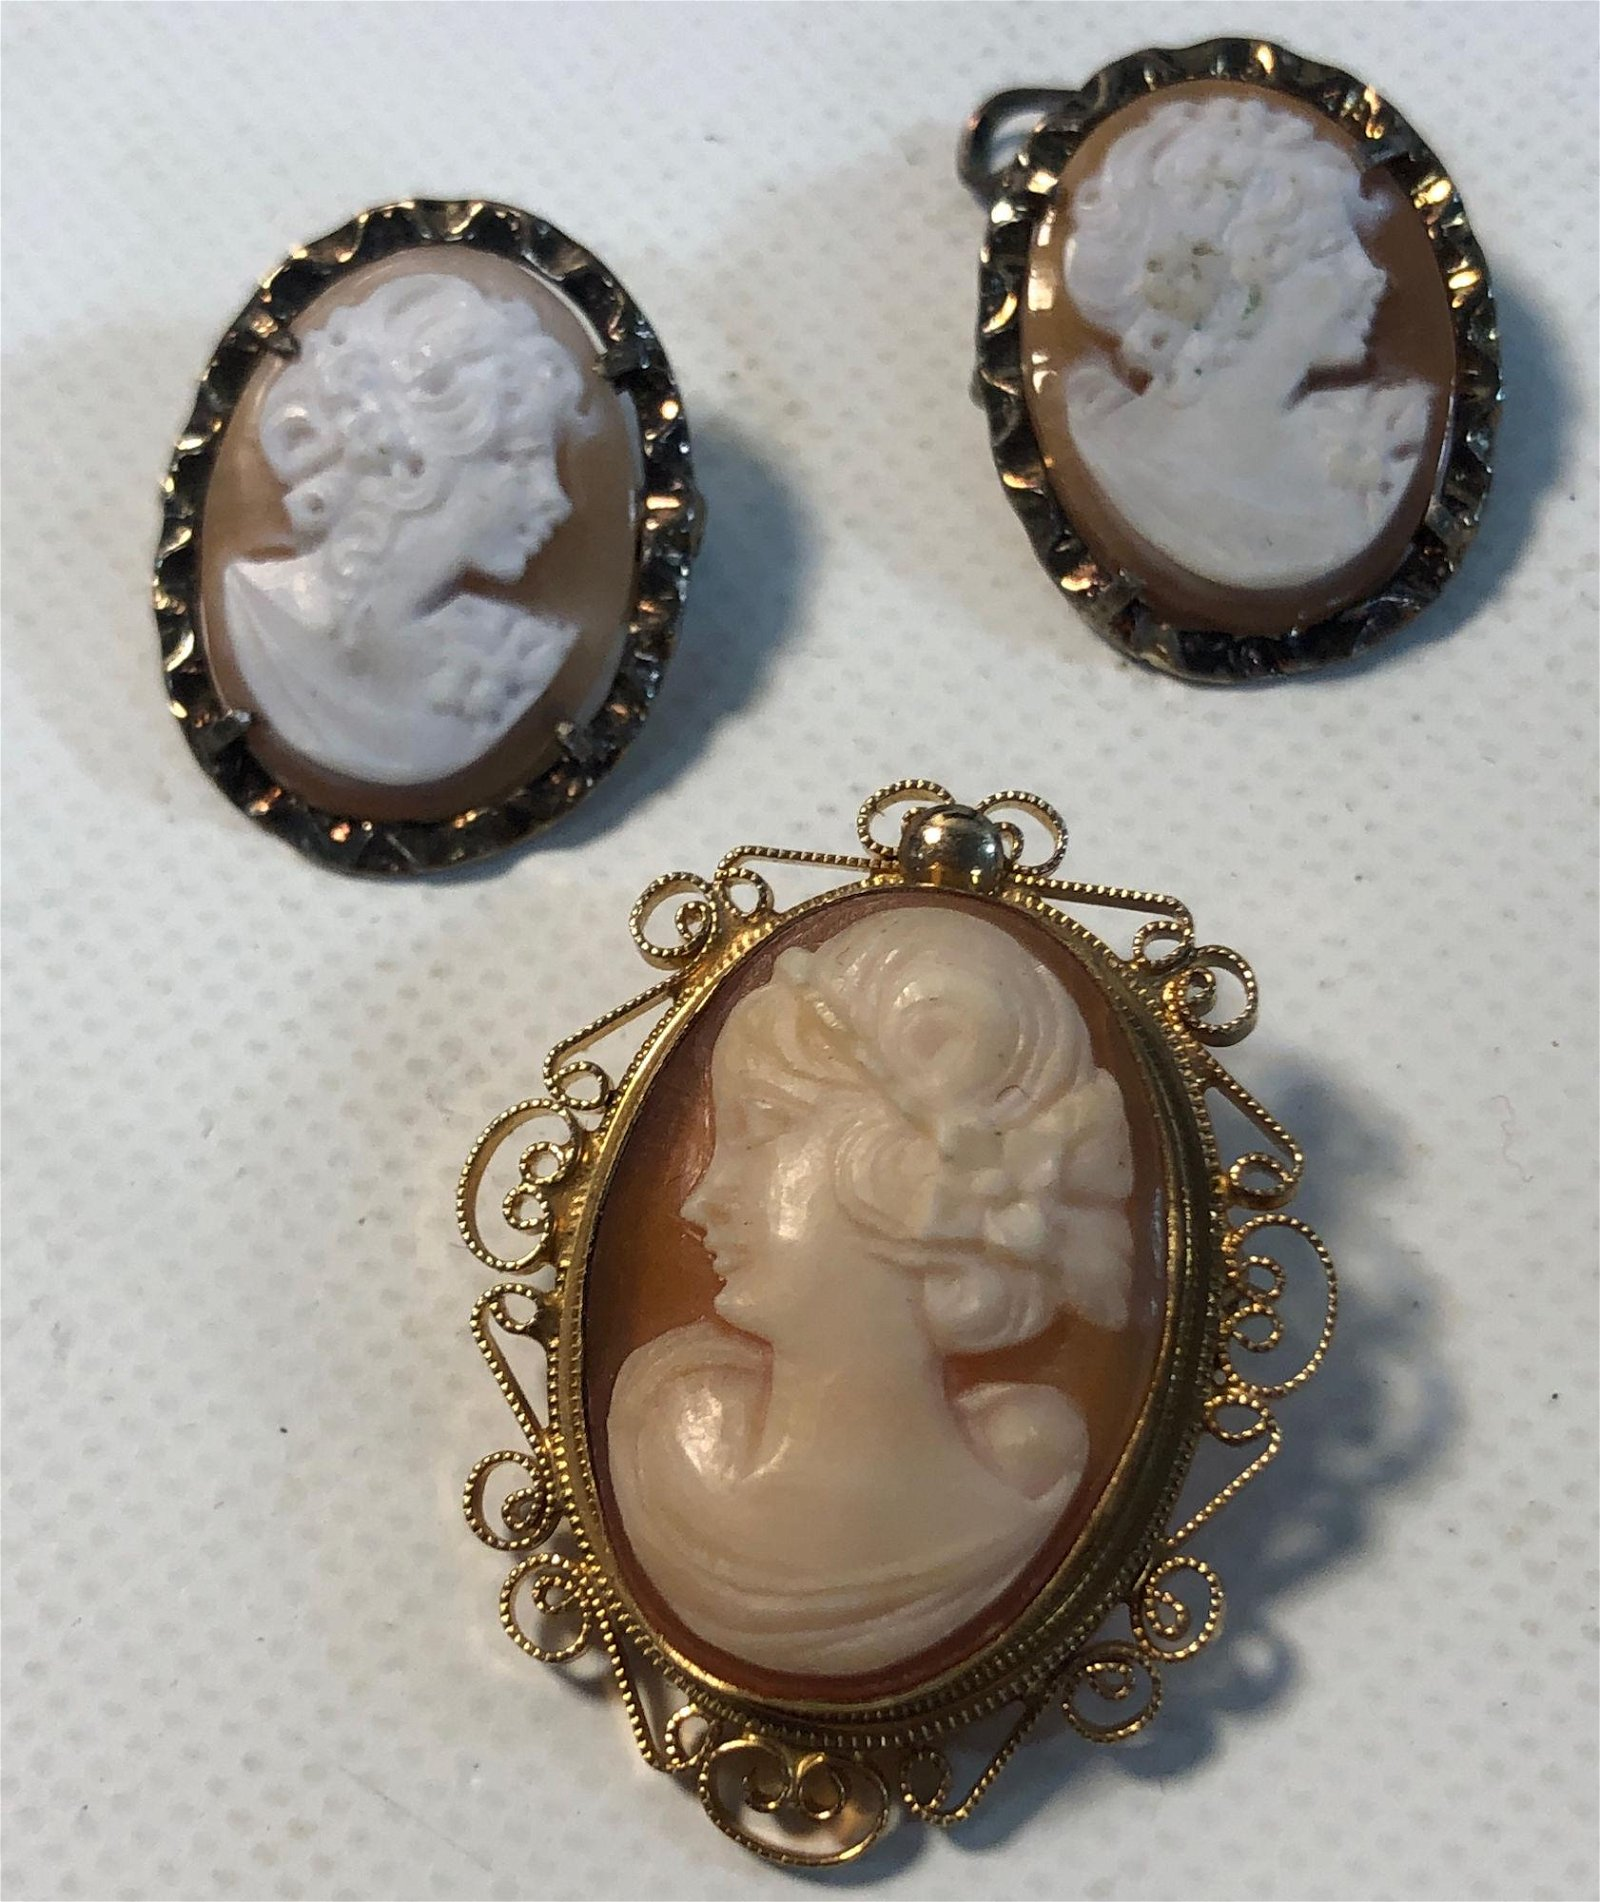 THREE HAND-CARVED SHELL CAMEO PENDANTS